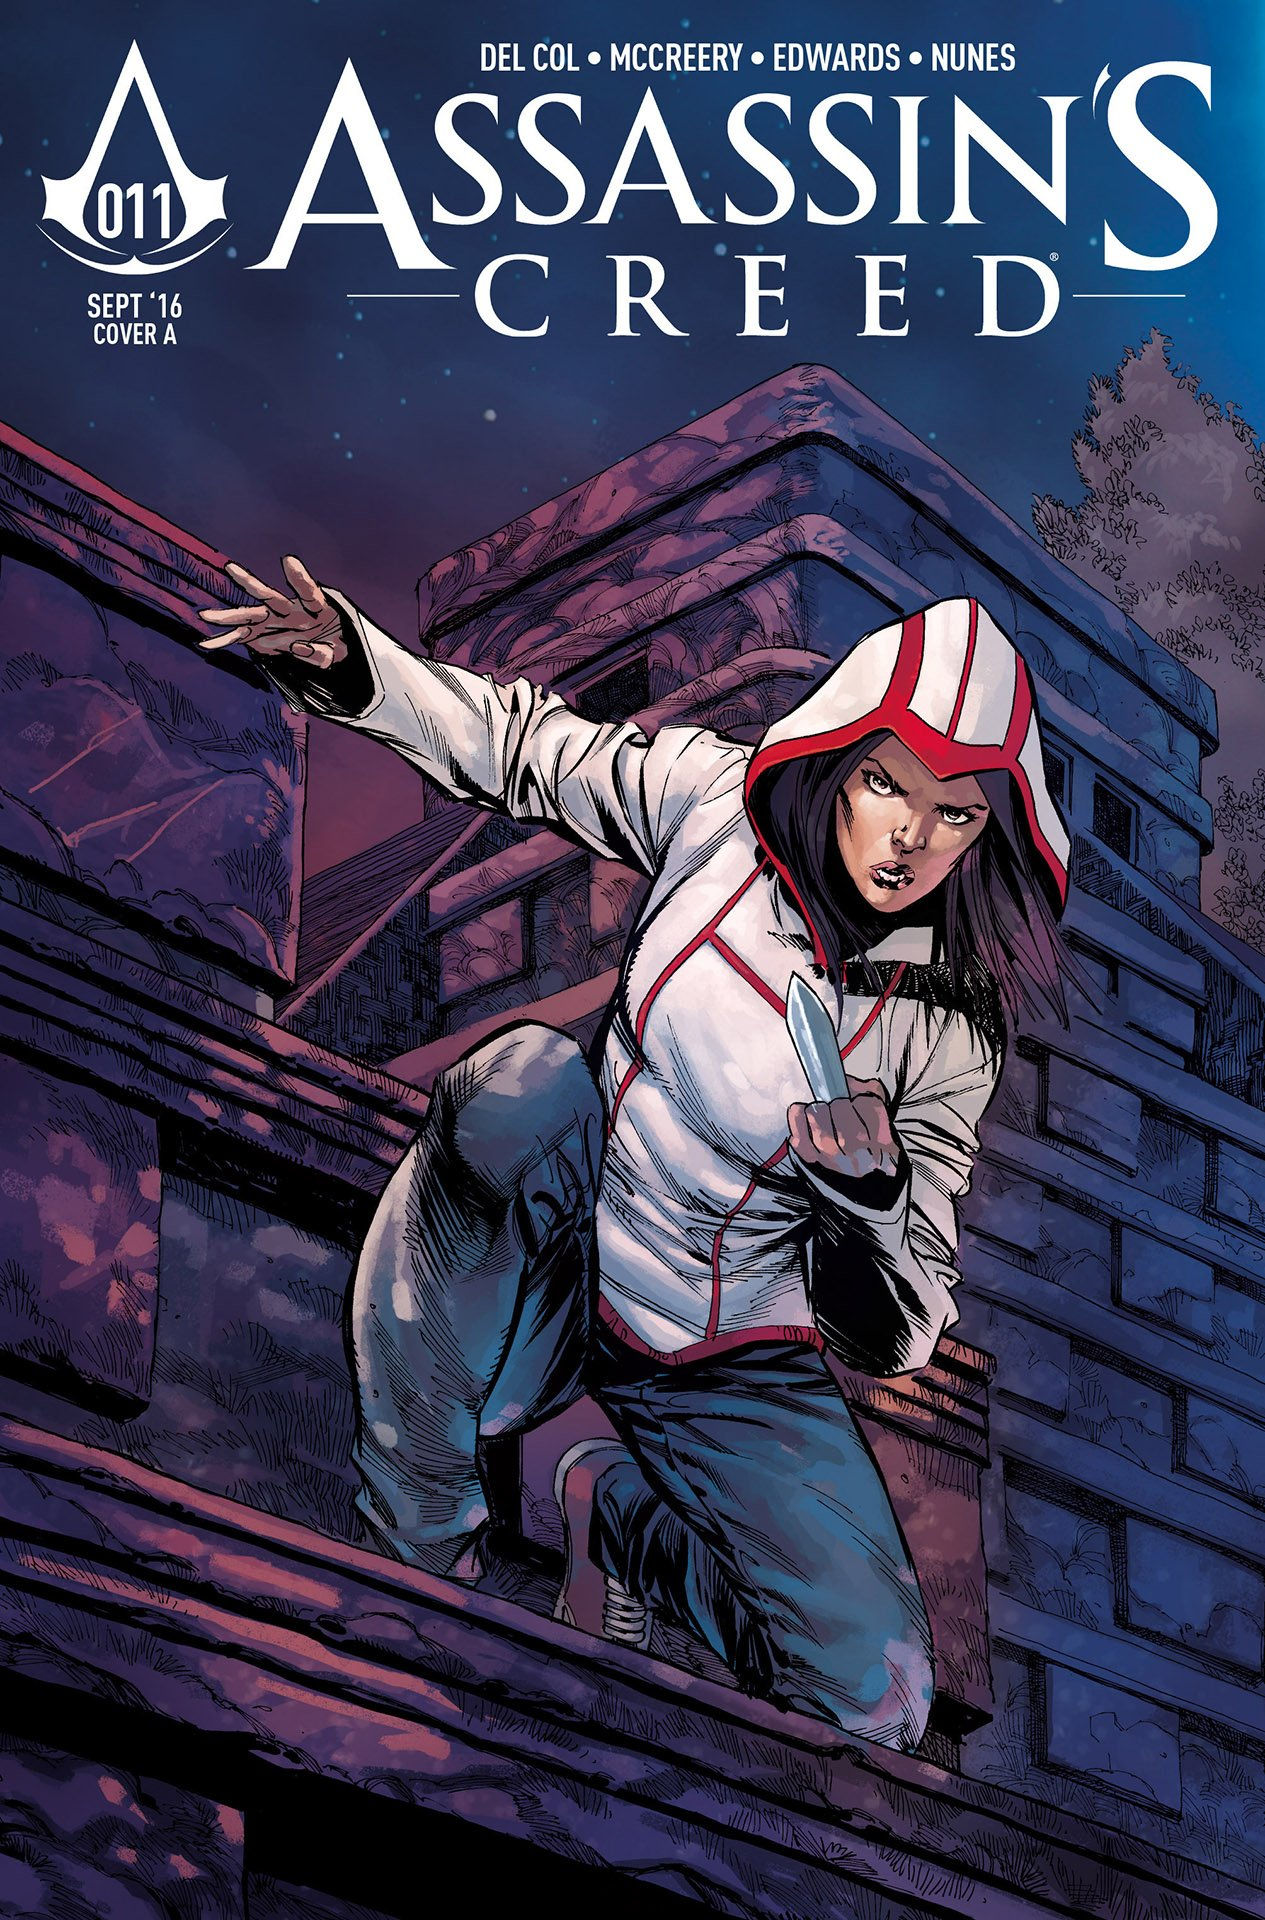 Assassin's Creed 011 (cover a) (September 2016)